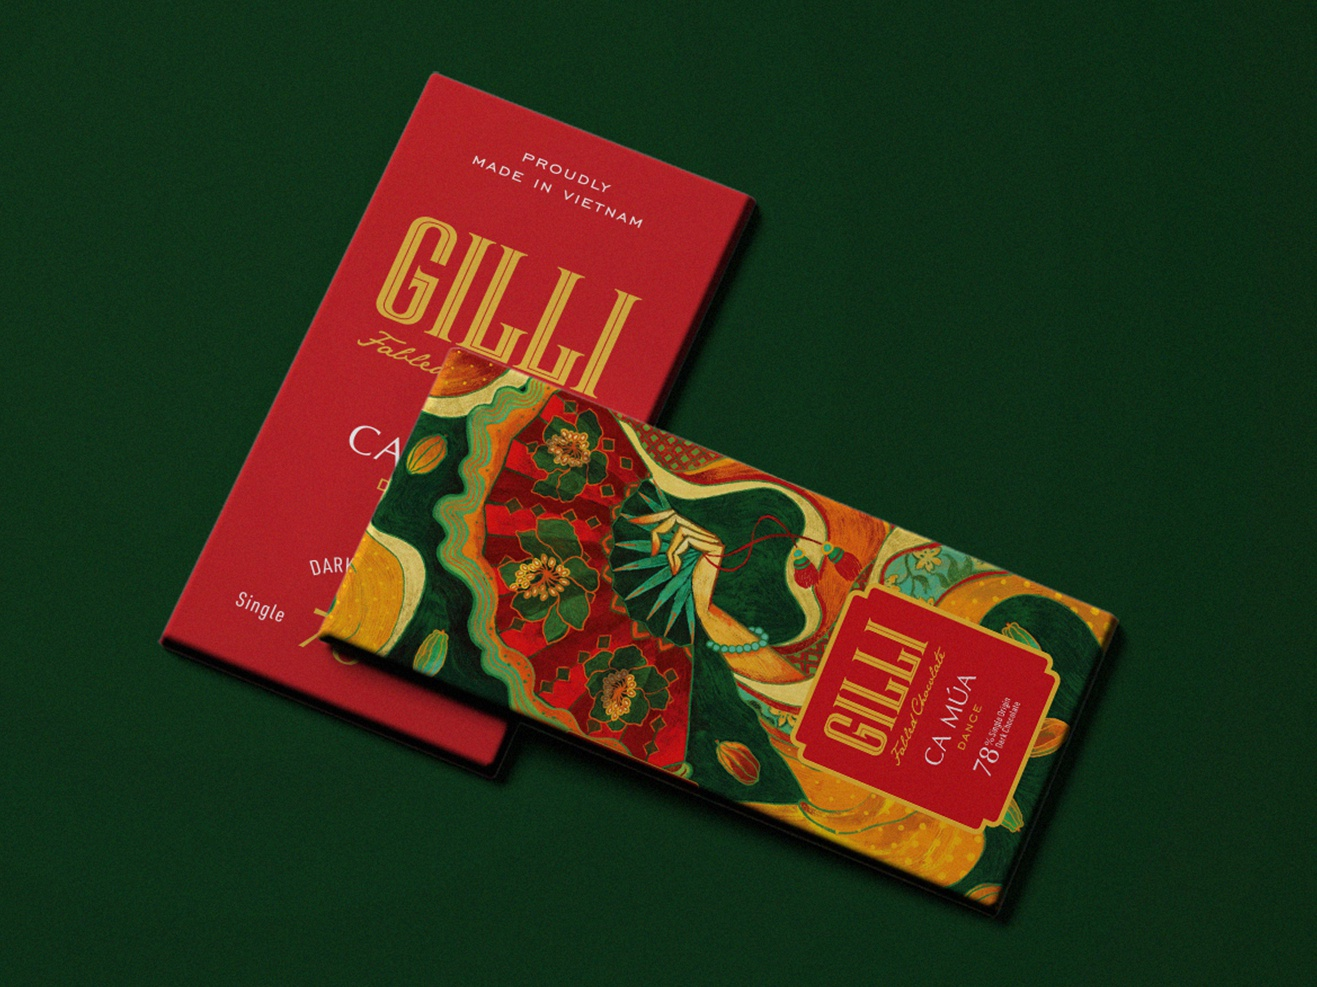 Gilli chocolate traditional art lover chocolate packaging chocolate bar branding design packagingdesign packaging colour and lines colour picker nguoidoitapbay design illustration